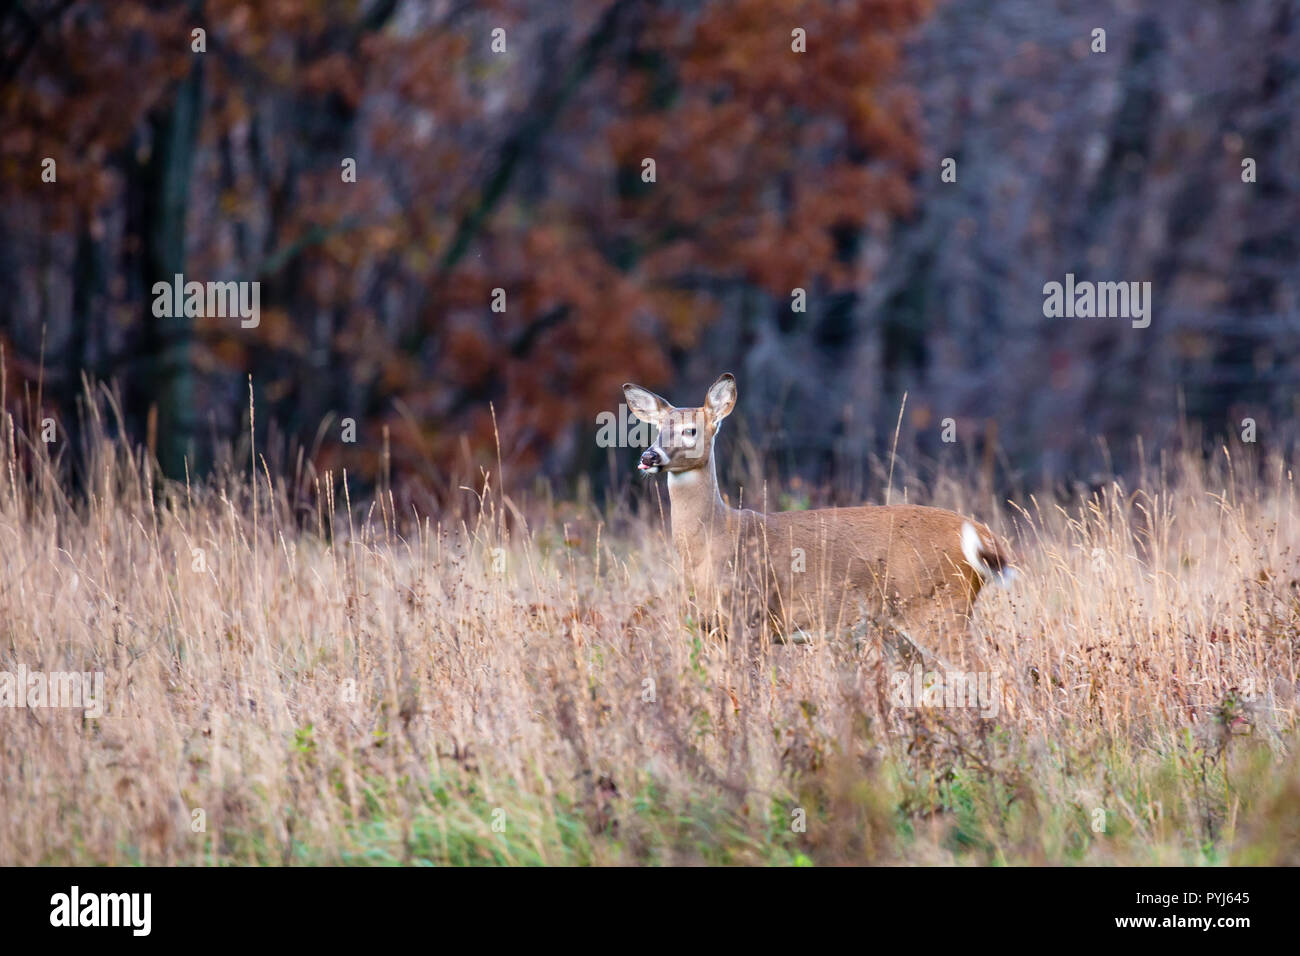 White-tailed deer  (odocoileus virginianus) with tounge sticking out. - Stock Image